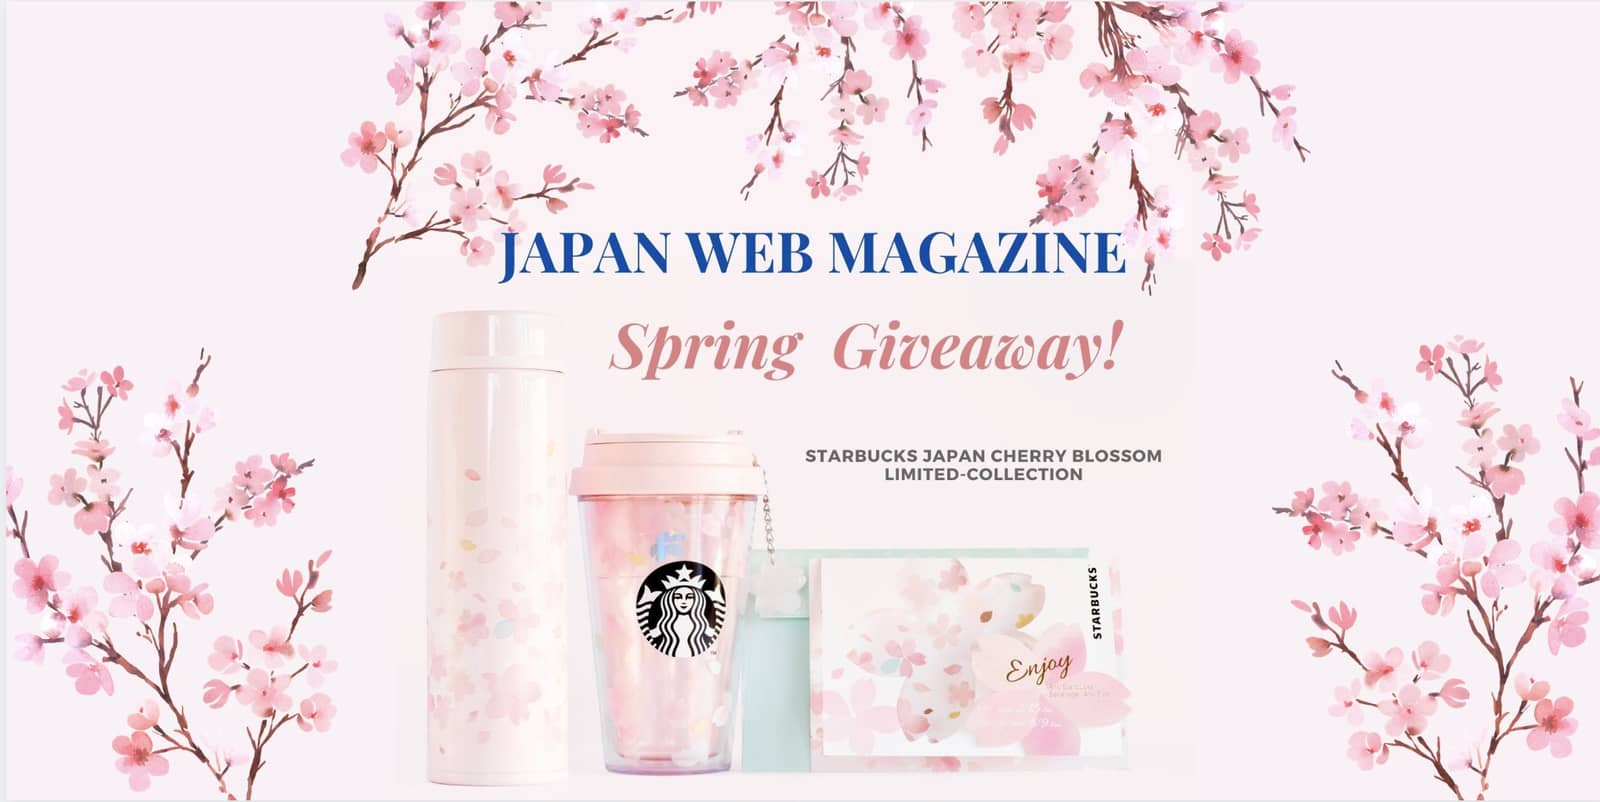 Starbucks Japan Sakura Collection 2020: Spring Give Away!!